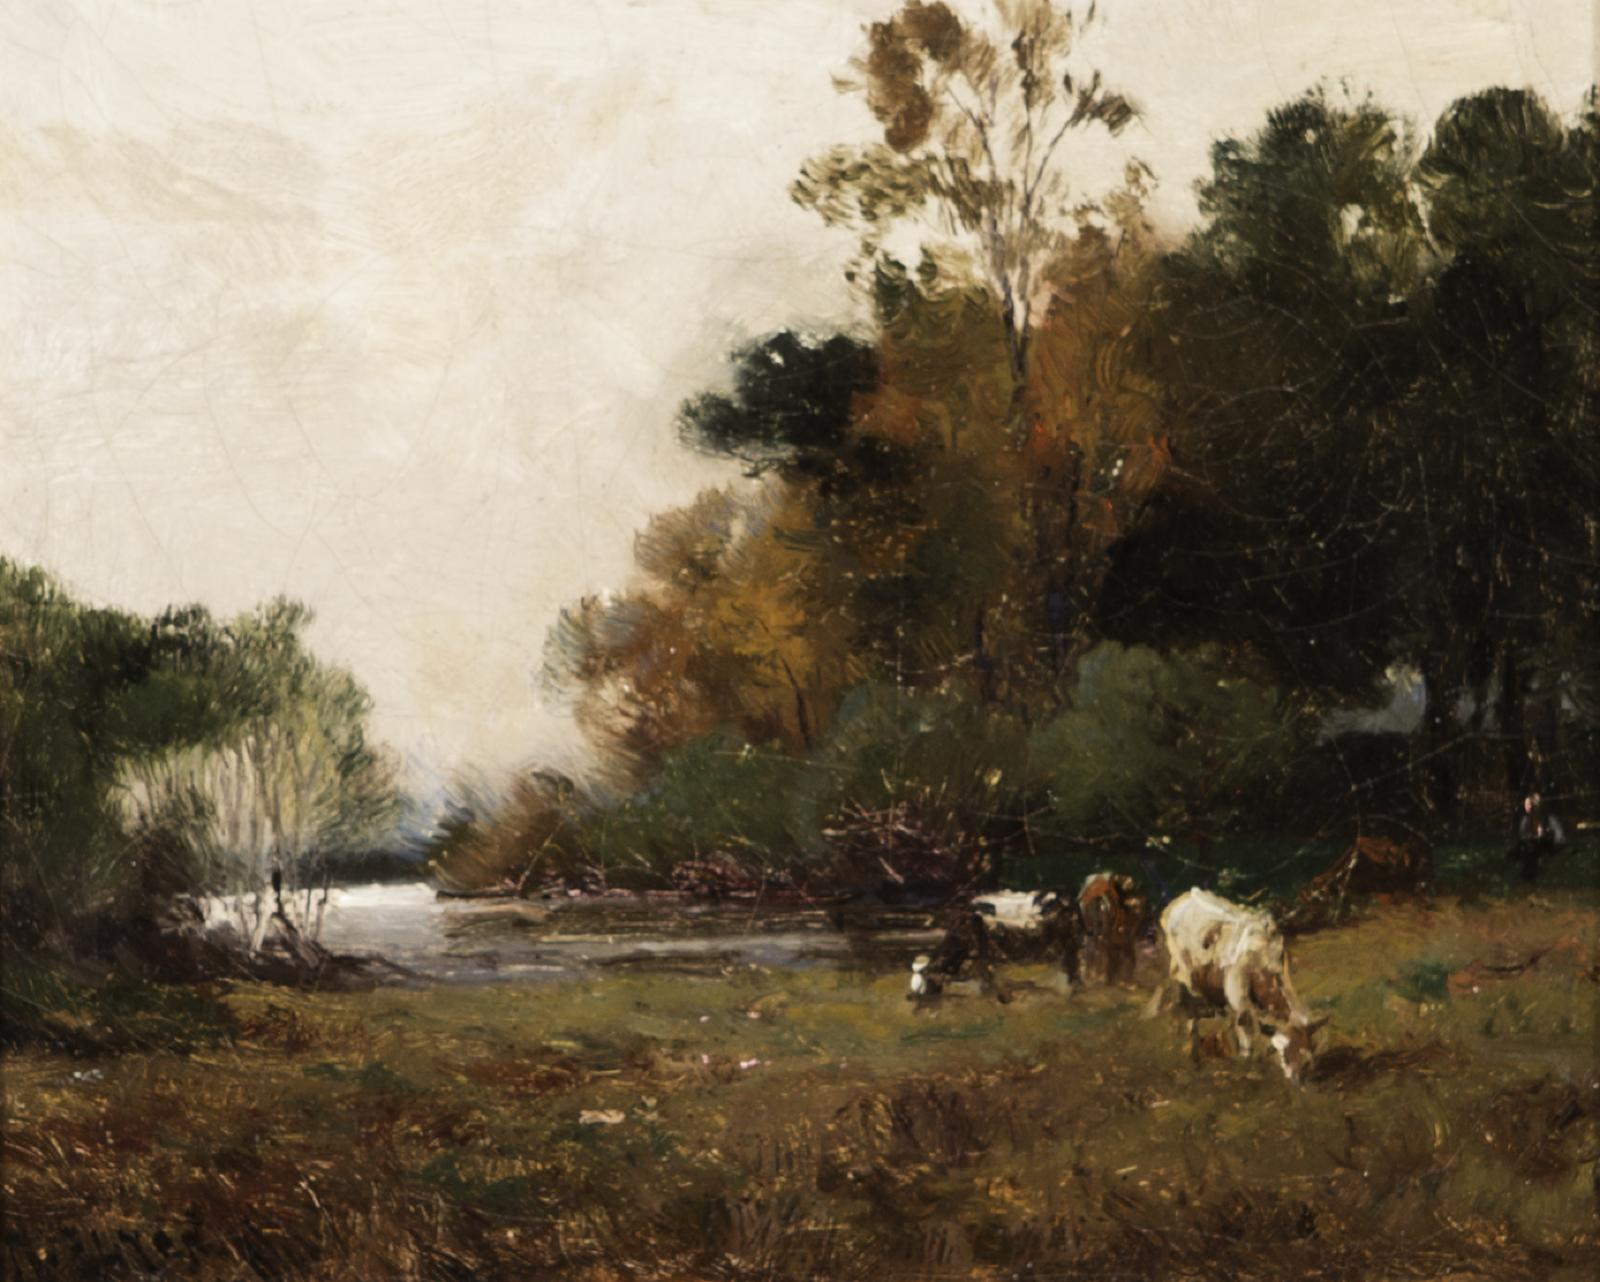 Cows grazing by a river, dark brown ground below and dark green trees behind the cows.